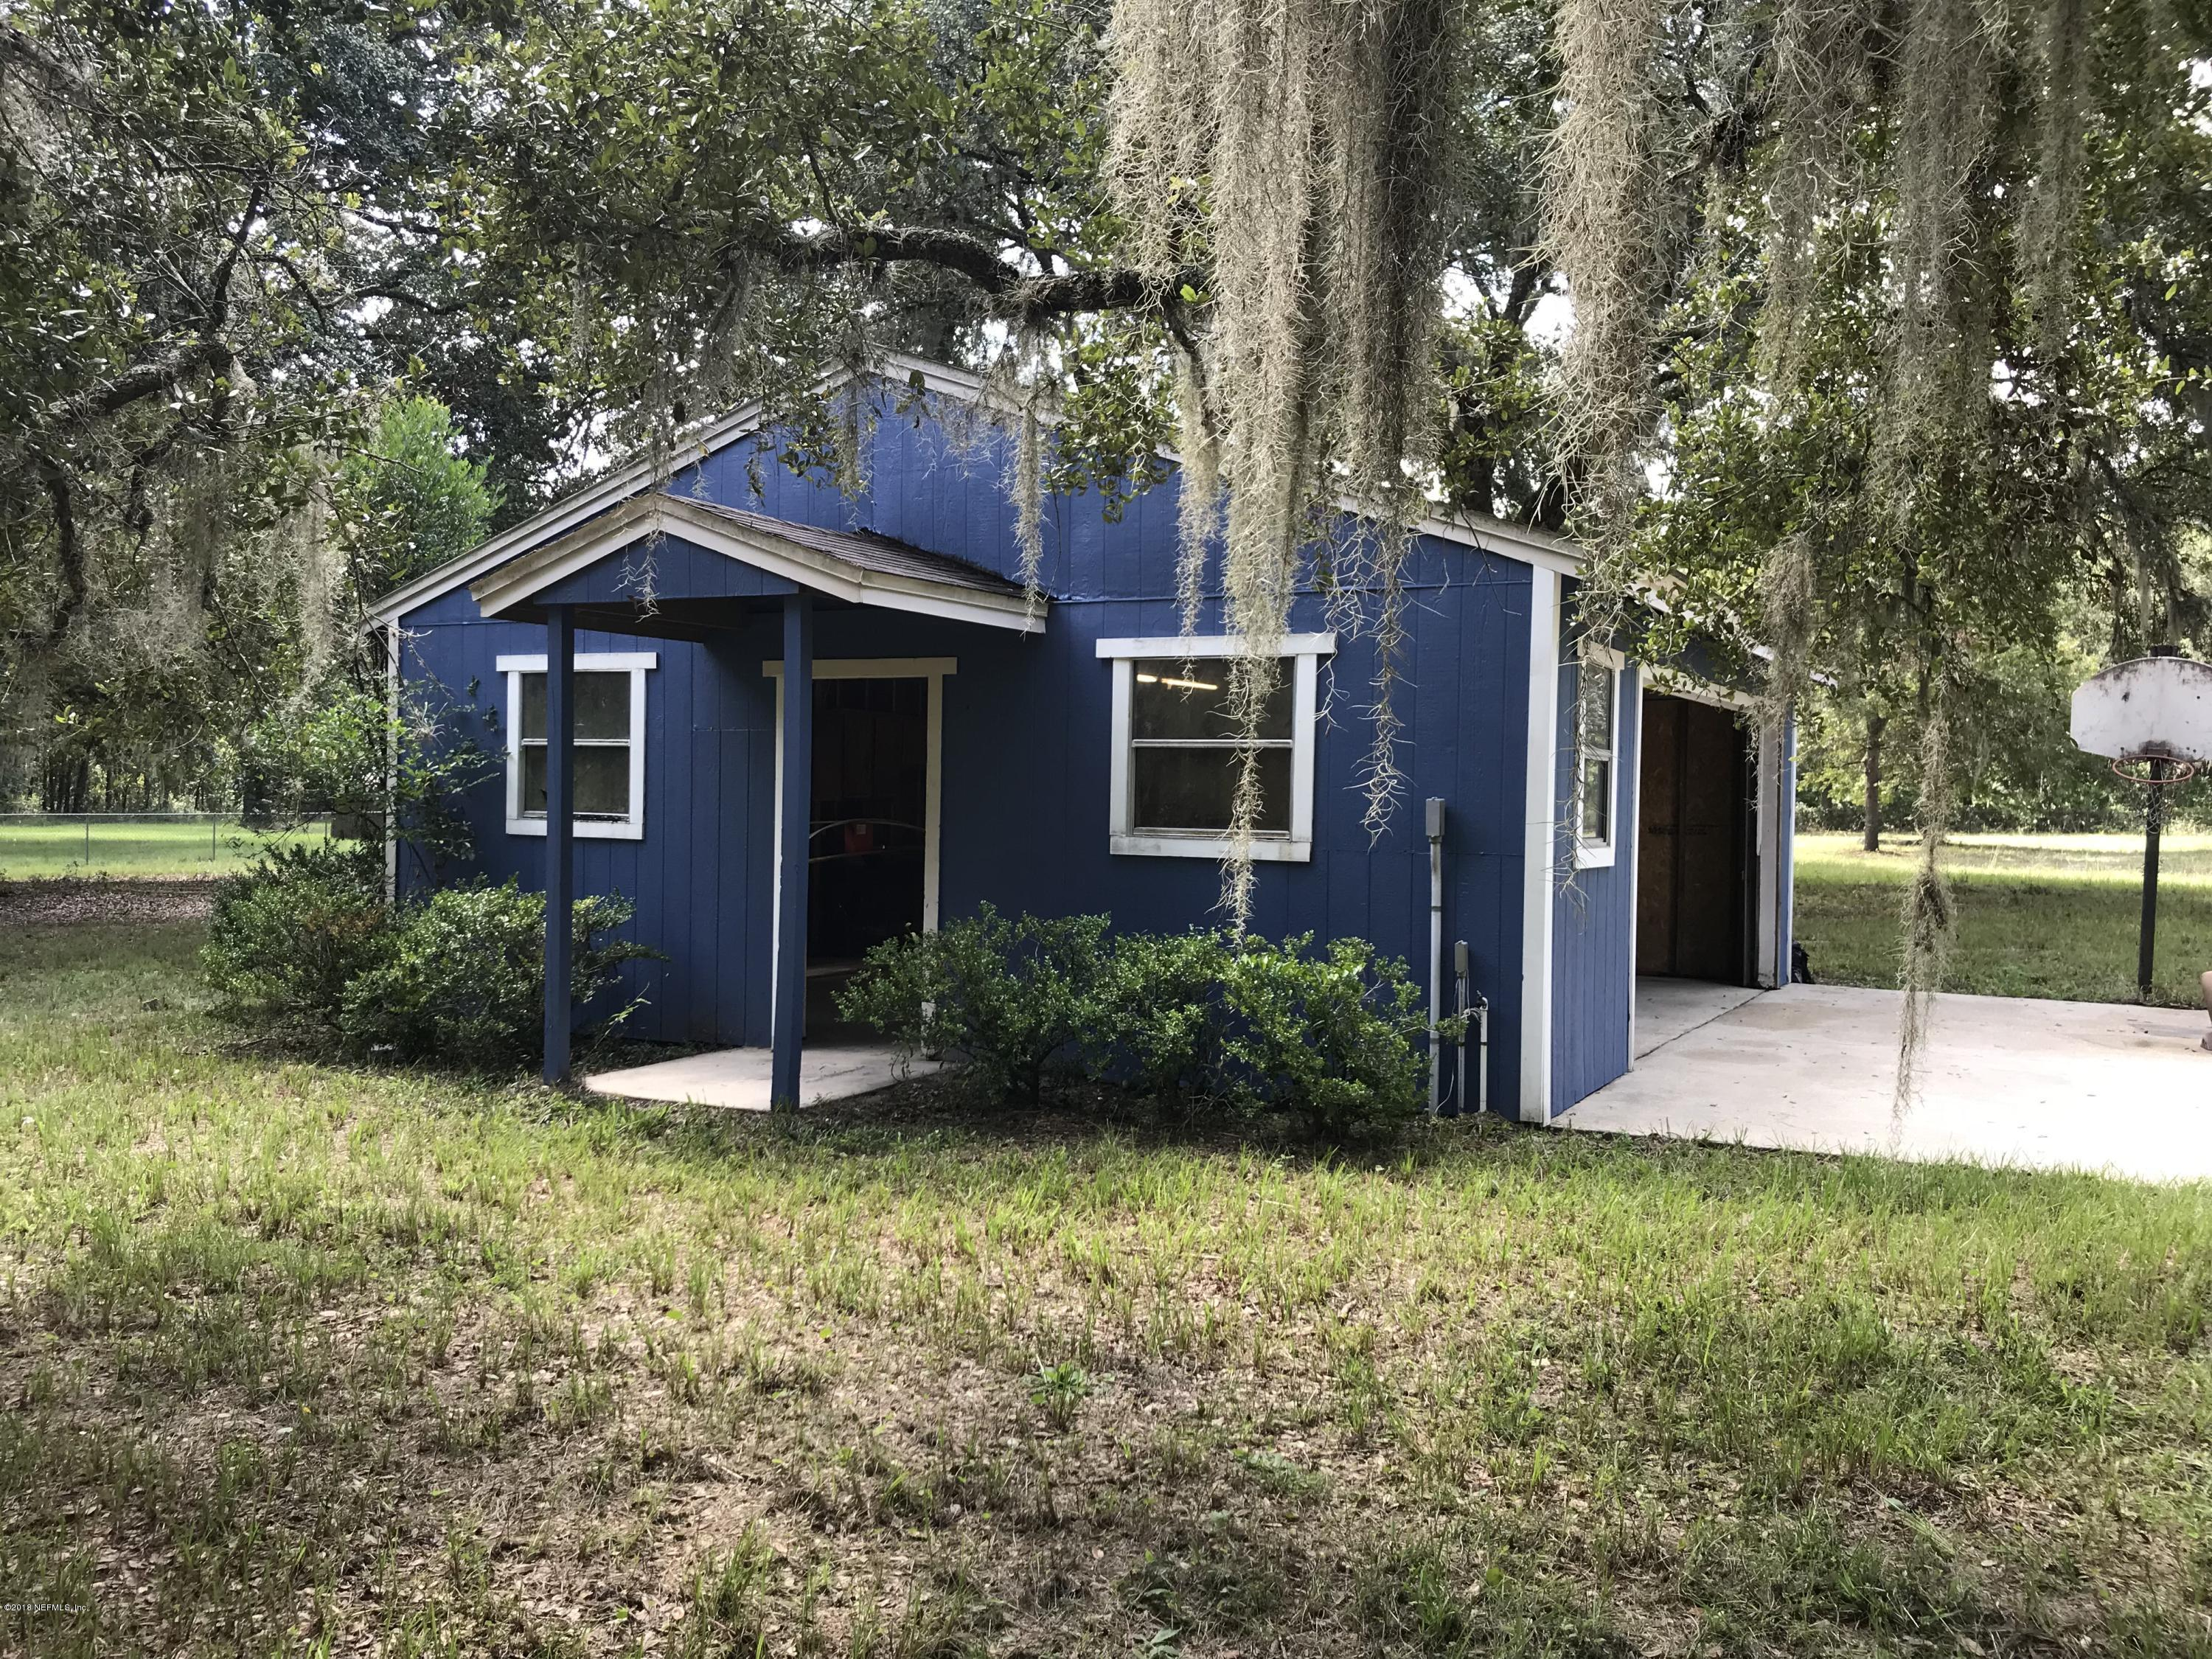 8606 HIPPS, JACKSONVILLE, FLORIDA 32244, 4 Bedrooms Bedrooms, ,2 BathroomsBathrooms,Residential - single family,For sale,HIPPS,953738